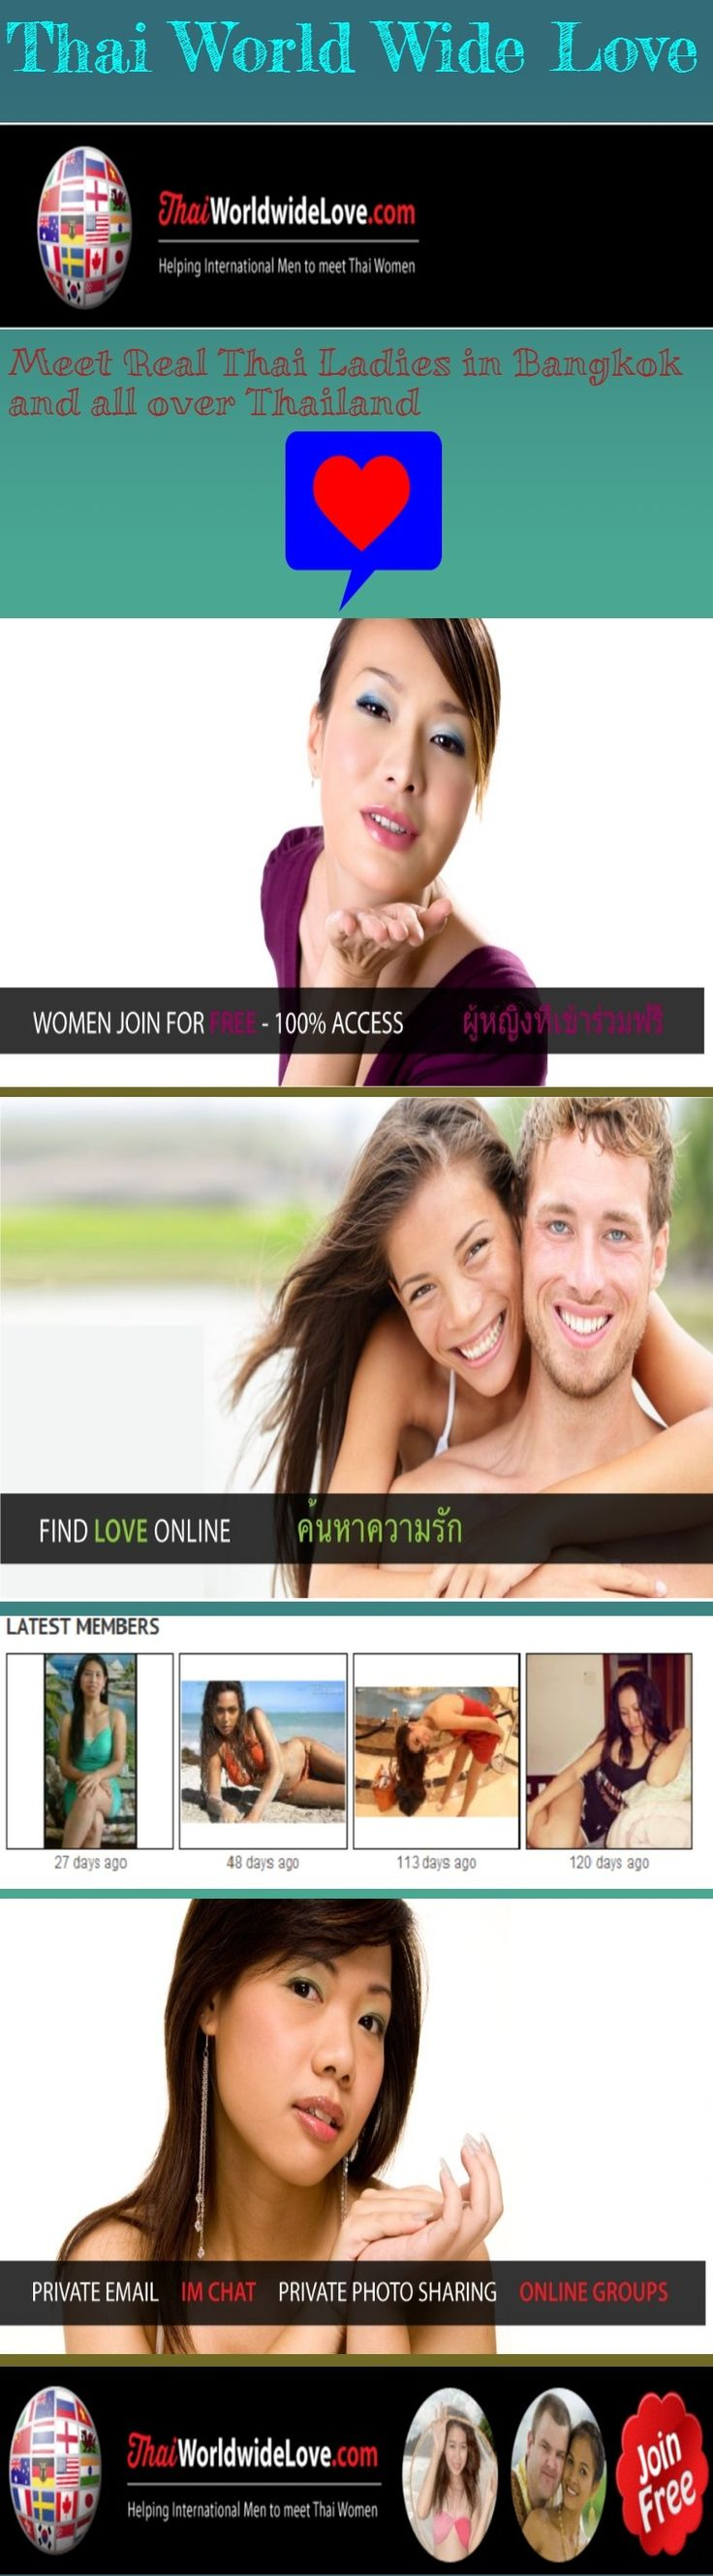 Thai uk dating agency